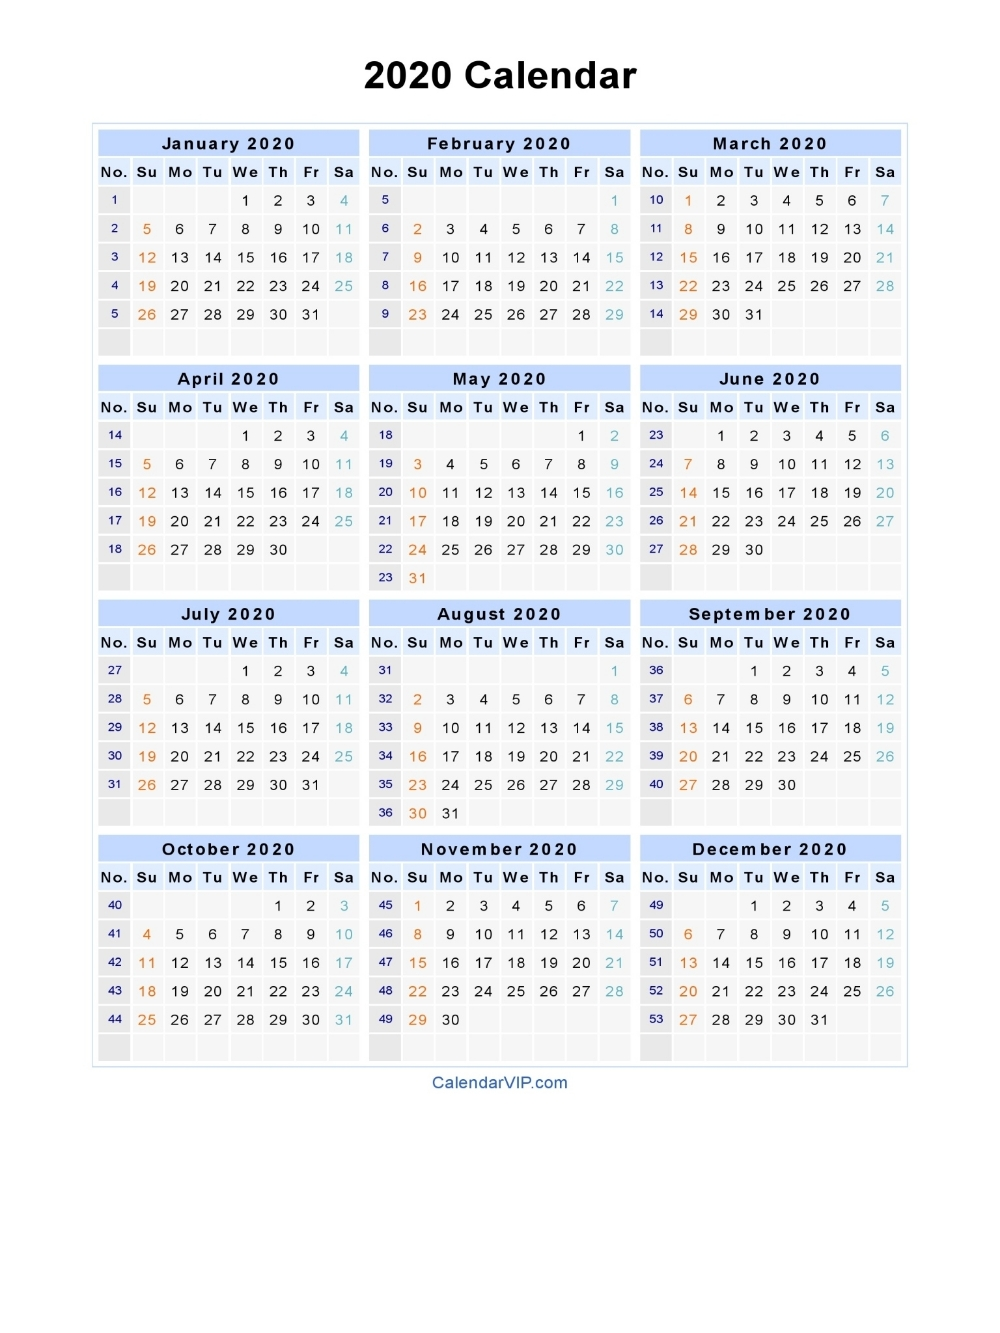 2020 Calendar - Blank Printable Calendar Template In Pdf with regard to Calander At A Glance 2020 Excel